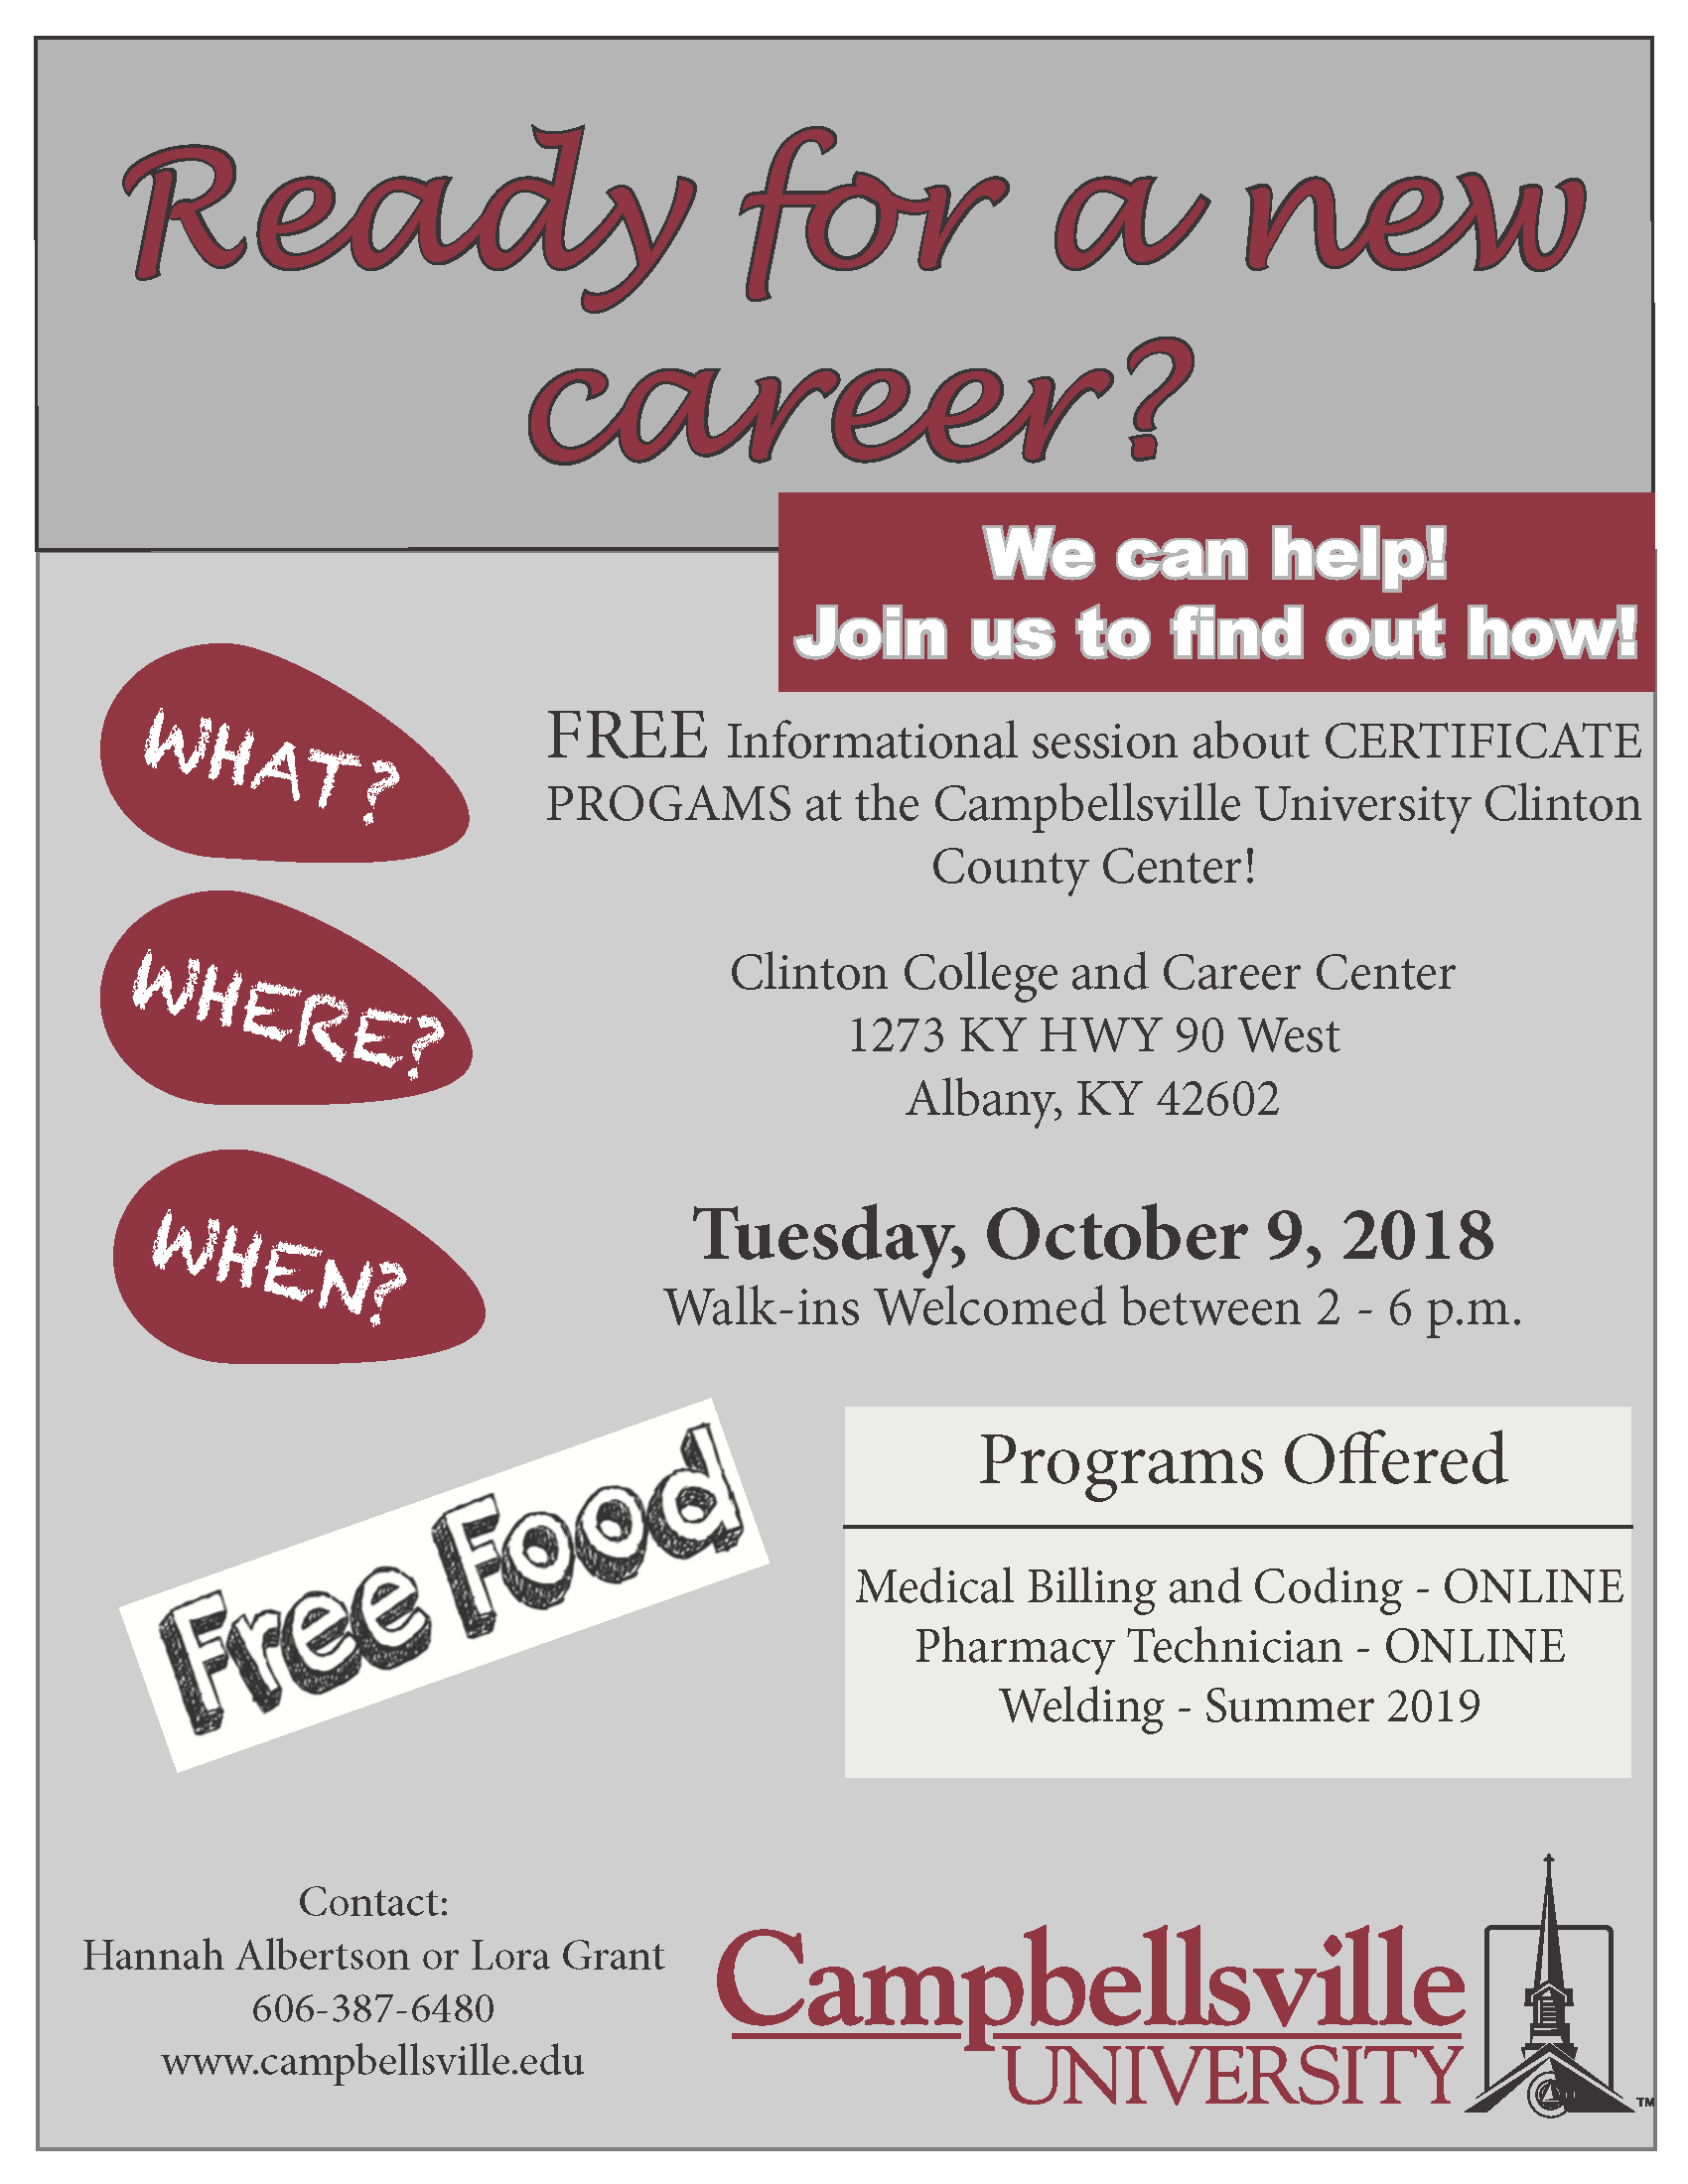 Campbellsville University will offer an informational session about available certificate programs at the Clinton College and Career Center on Tuesday, October 9th.